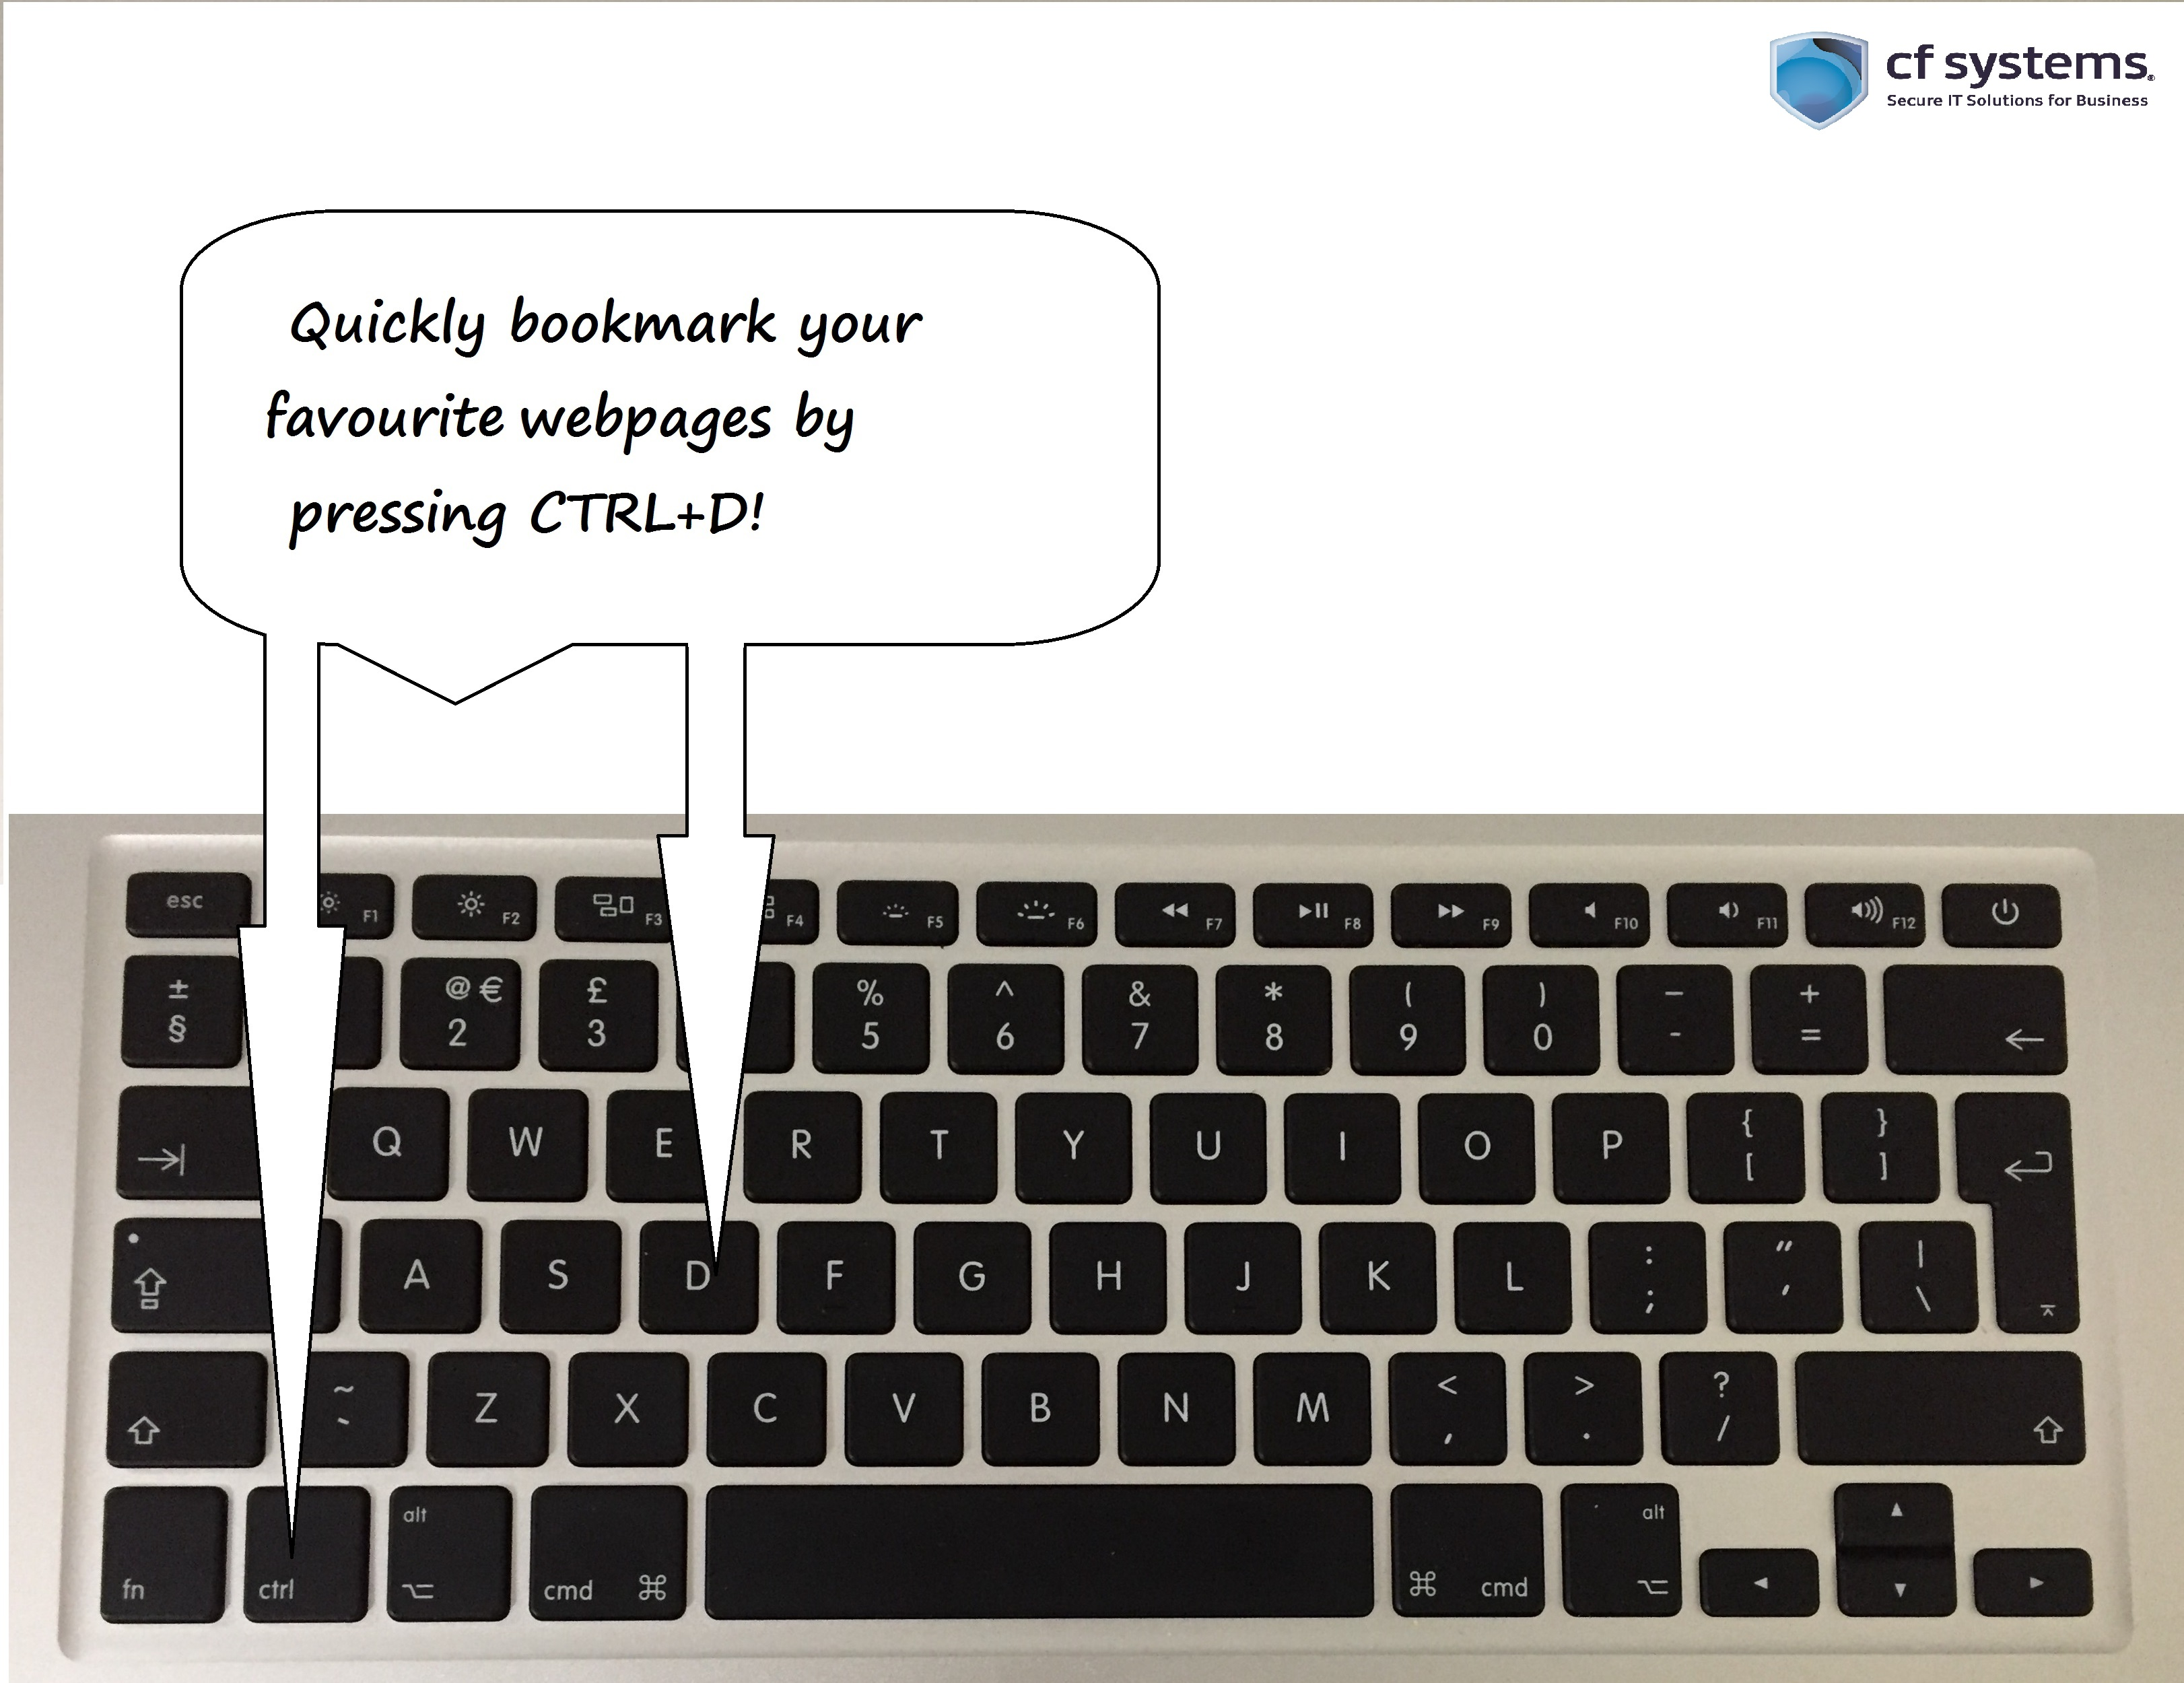 Just found a favourite online page you'd like to bookmark? Why not using your keyboard to do so?